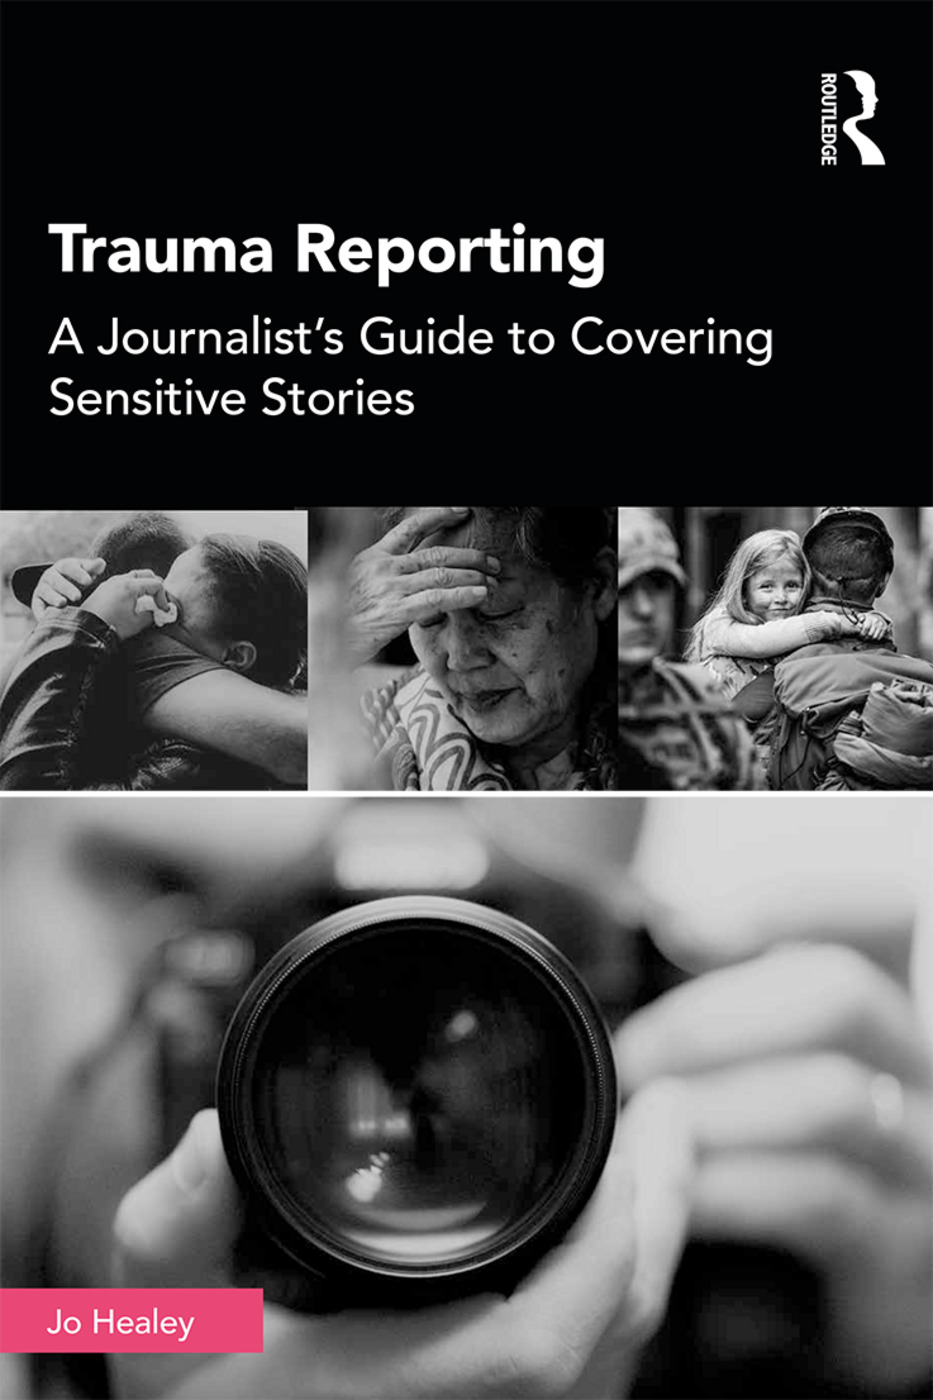 Trauma Reporting: A Journalist's Guide to Covering Sensitive Stories book cover